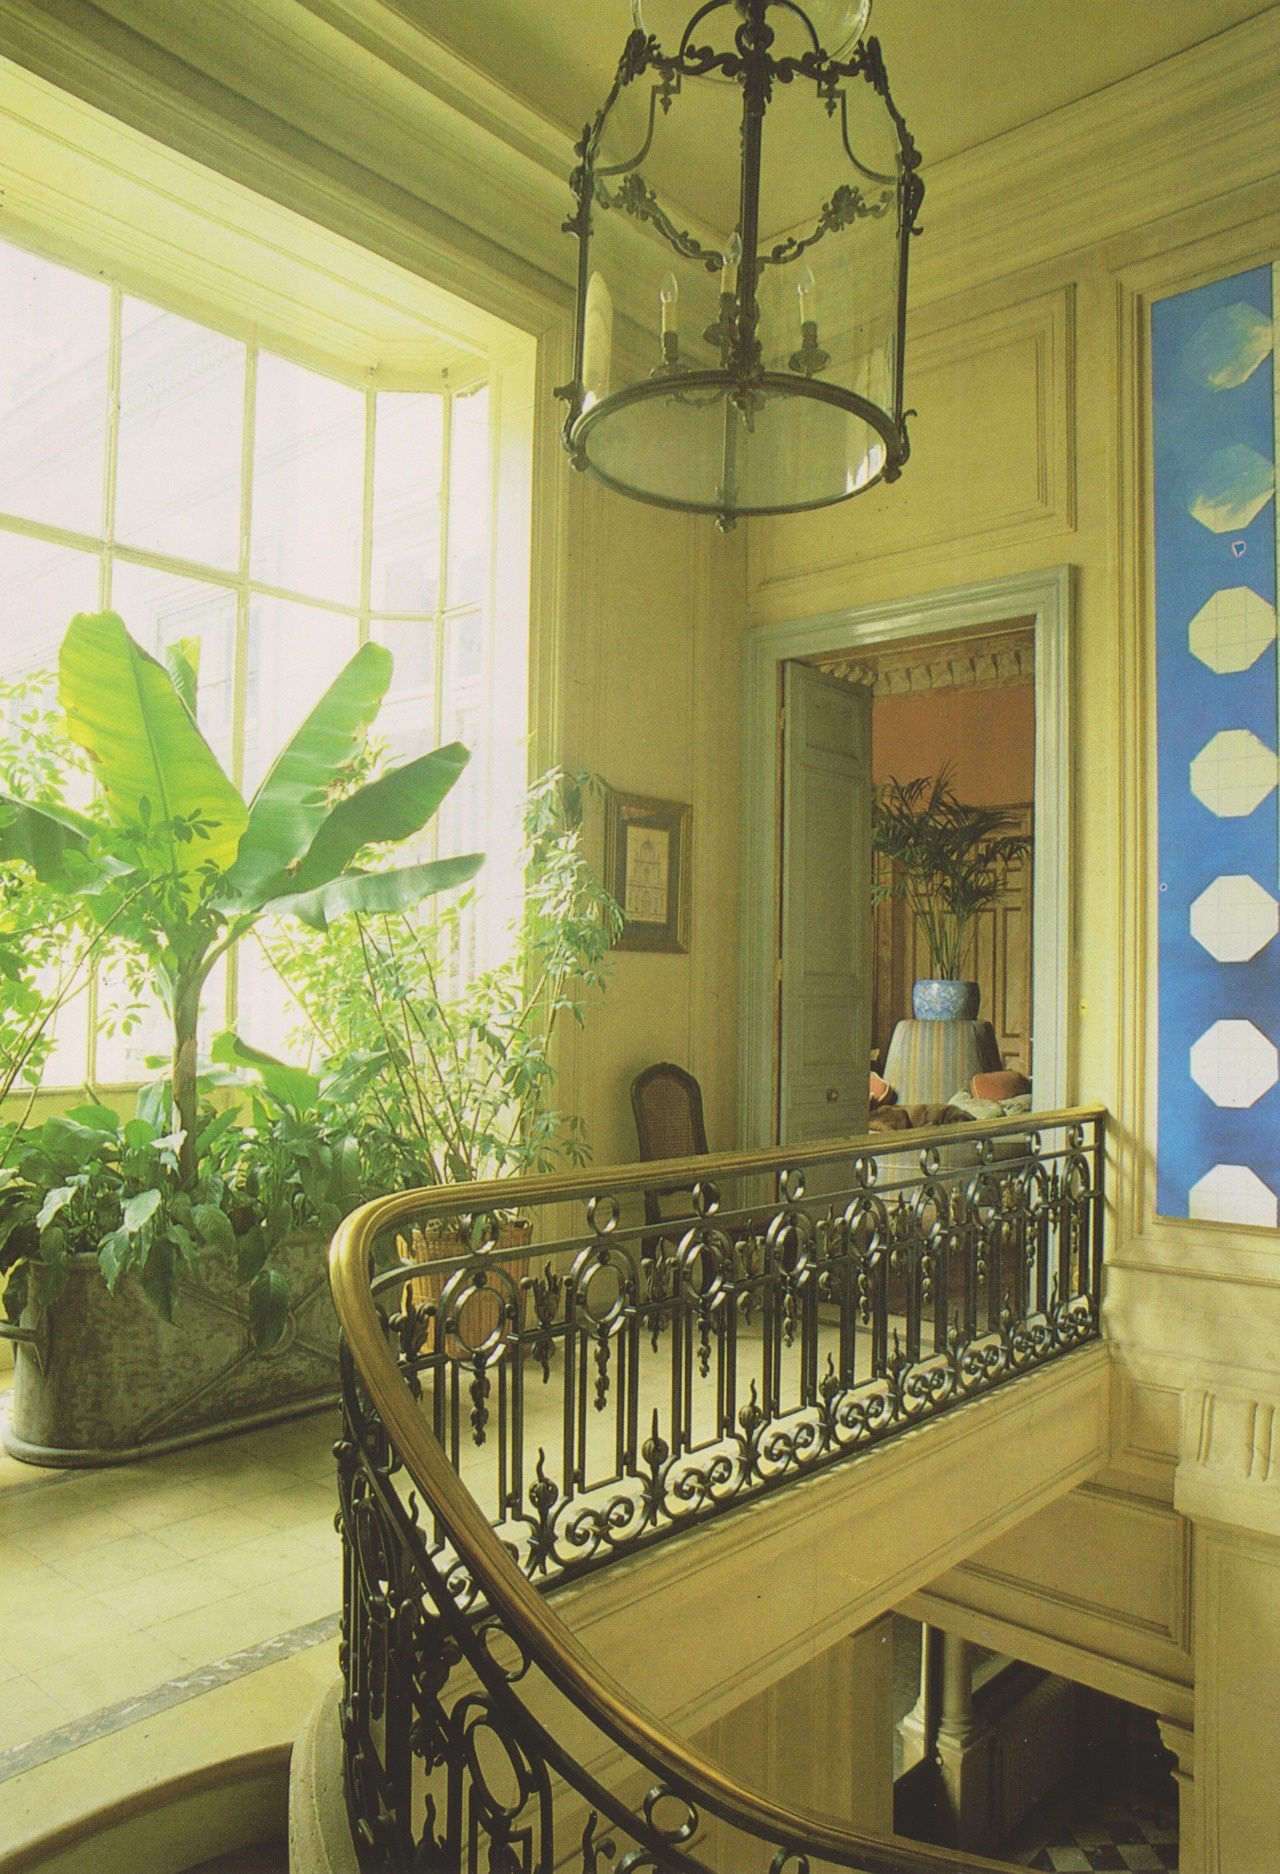 A 19th-century lantern hangs over the stairs; an antique bathtub from the Marche aux Puces, filled with plants, brightens the landing.The French Touch: Decoration and Design in the Most Beautiful Homes in France, 1988 #vintage#vintage interior#1980s#interior design#home decor#staircase#landing#lantern#brass#bathtub#plants#bay window#marble#French#apartment#city living#style#home#architecture#antique